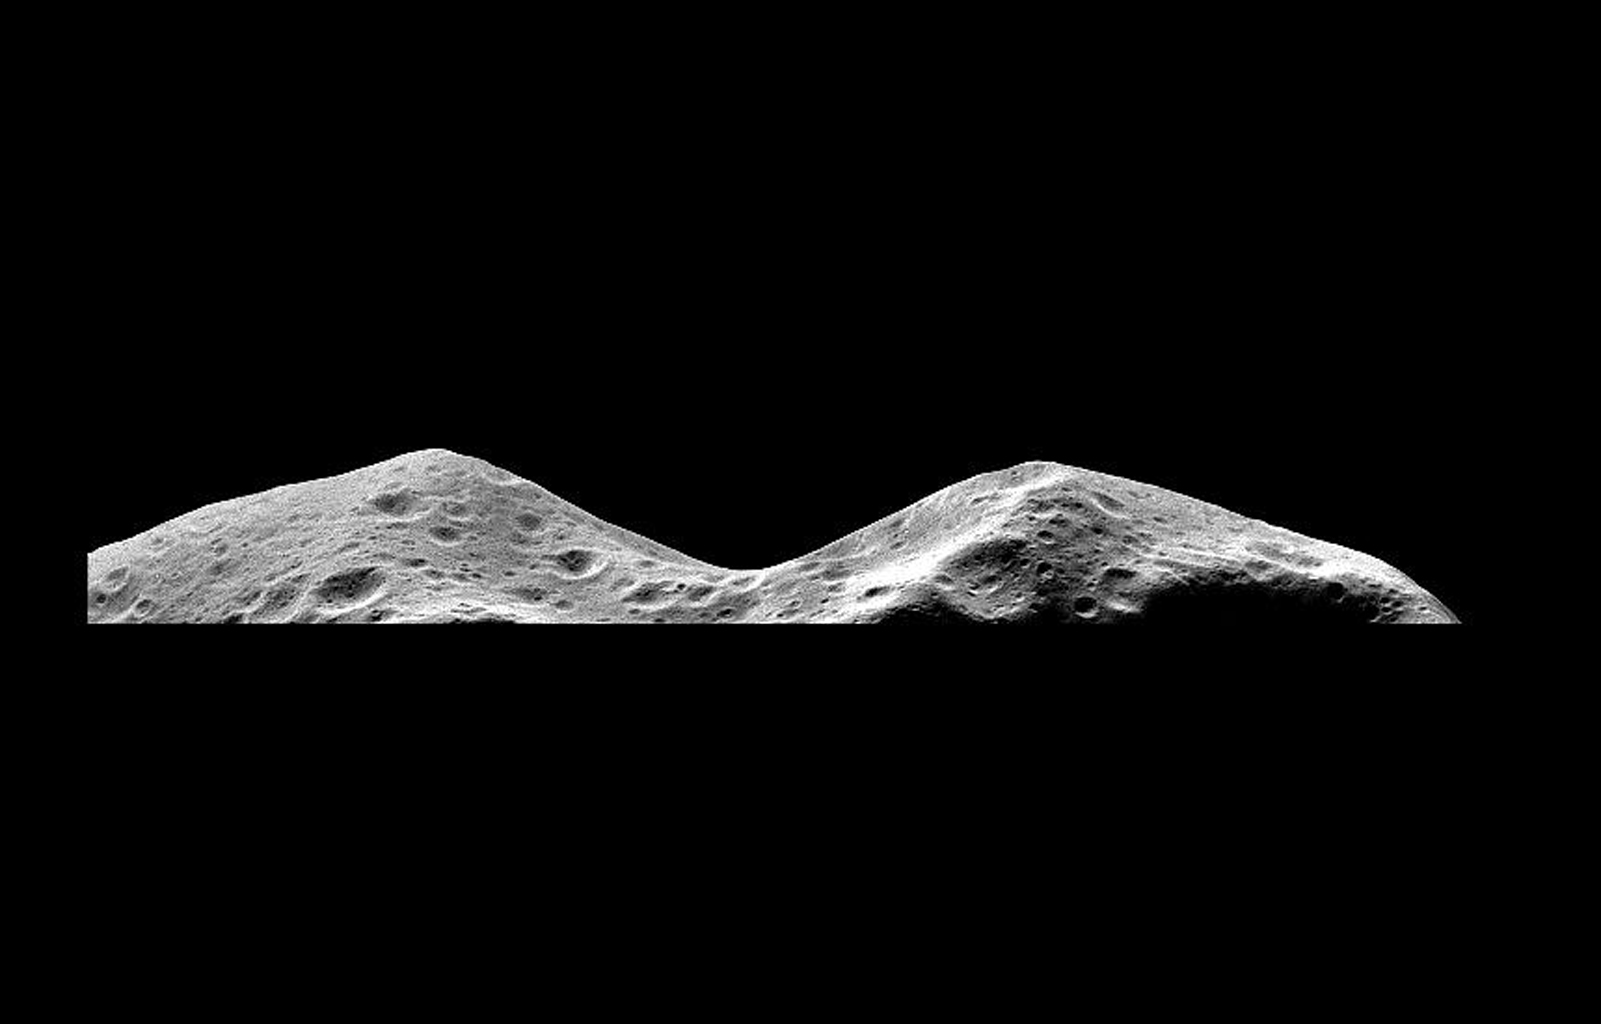 NASA's Galileo imaging system captured this picture of the limb of the asteroid 243 Ida about 46 seconds after its closest approach on August 28, 1993, from a range of only 2480 kilometers.